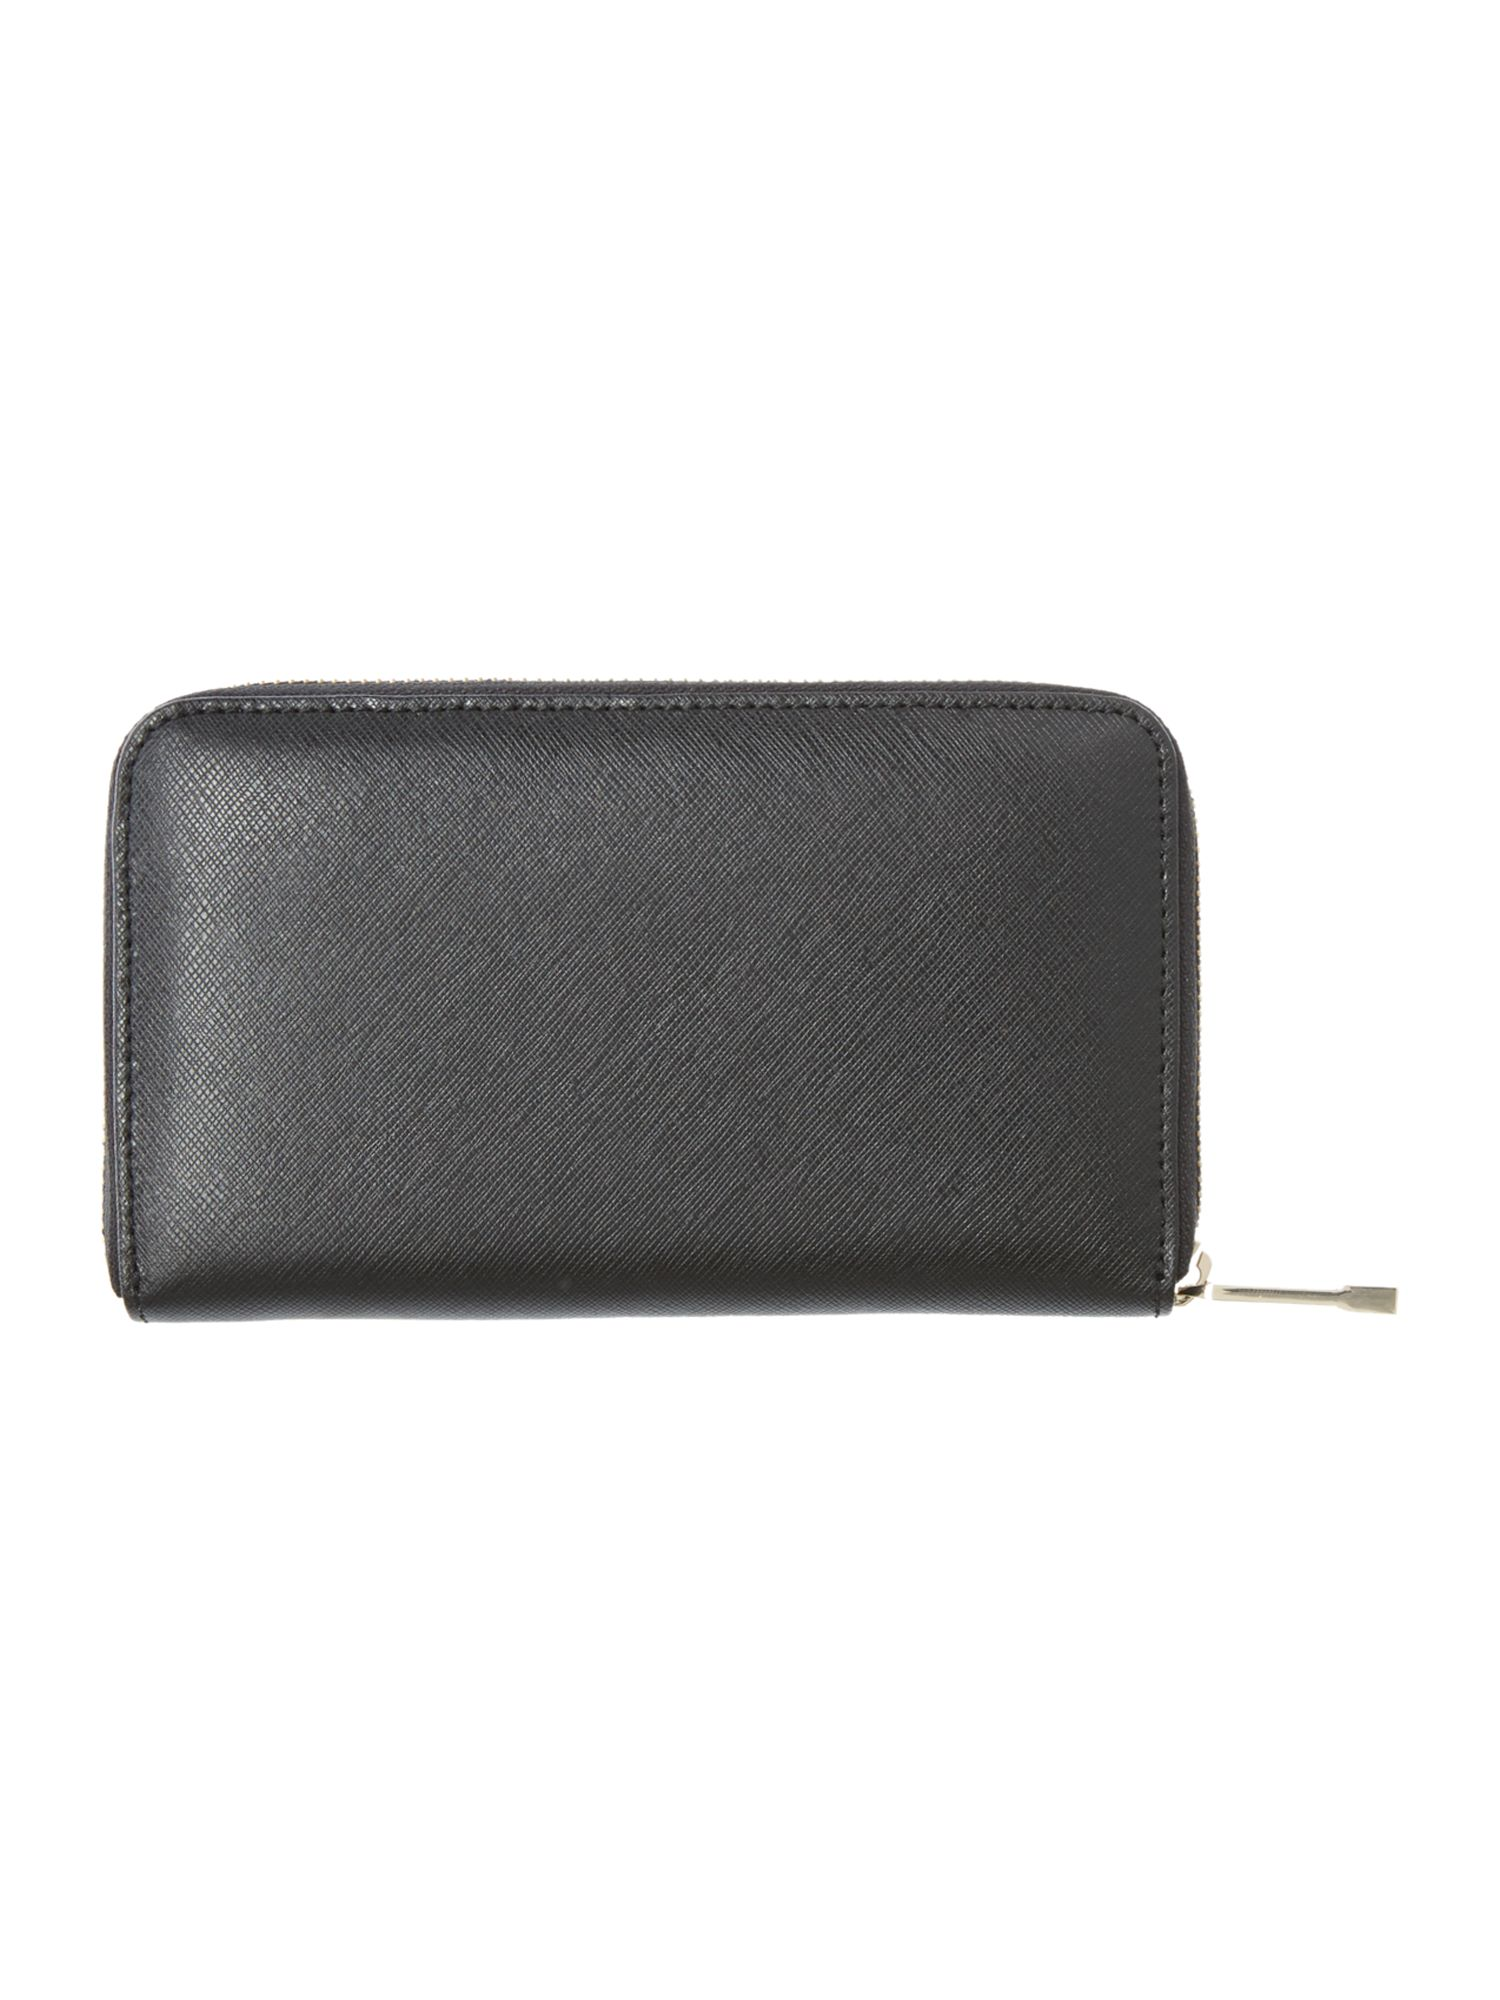 Saffiano black large zip aroun